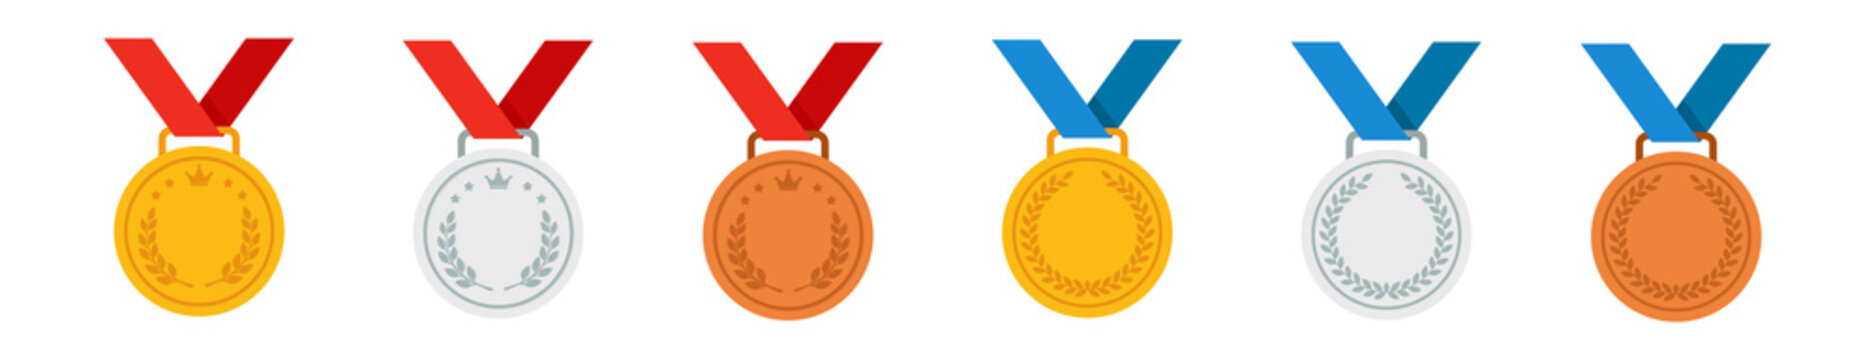 Set of gold, silver and bronze medals. Vector icon